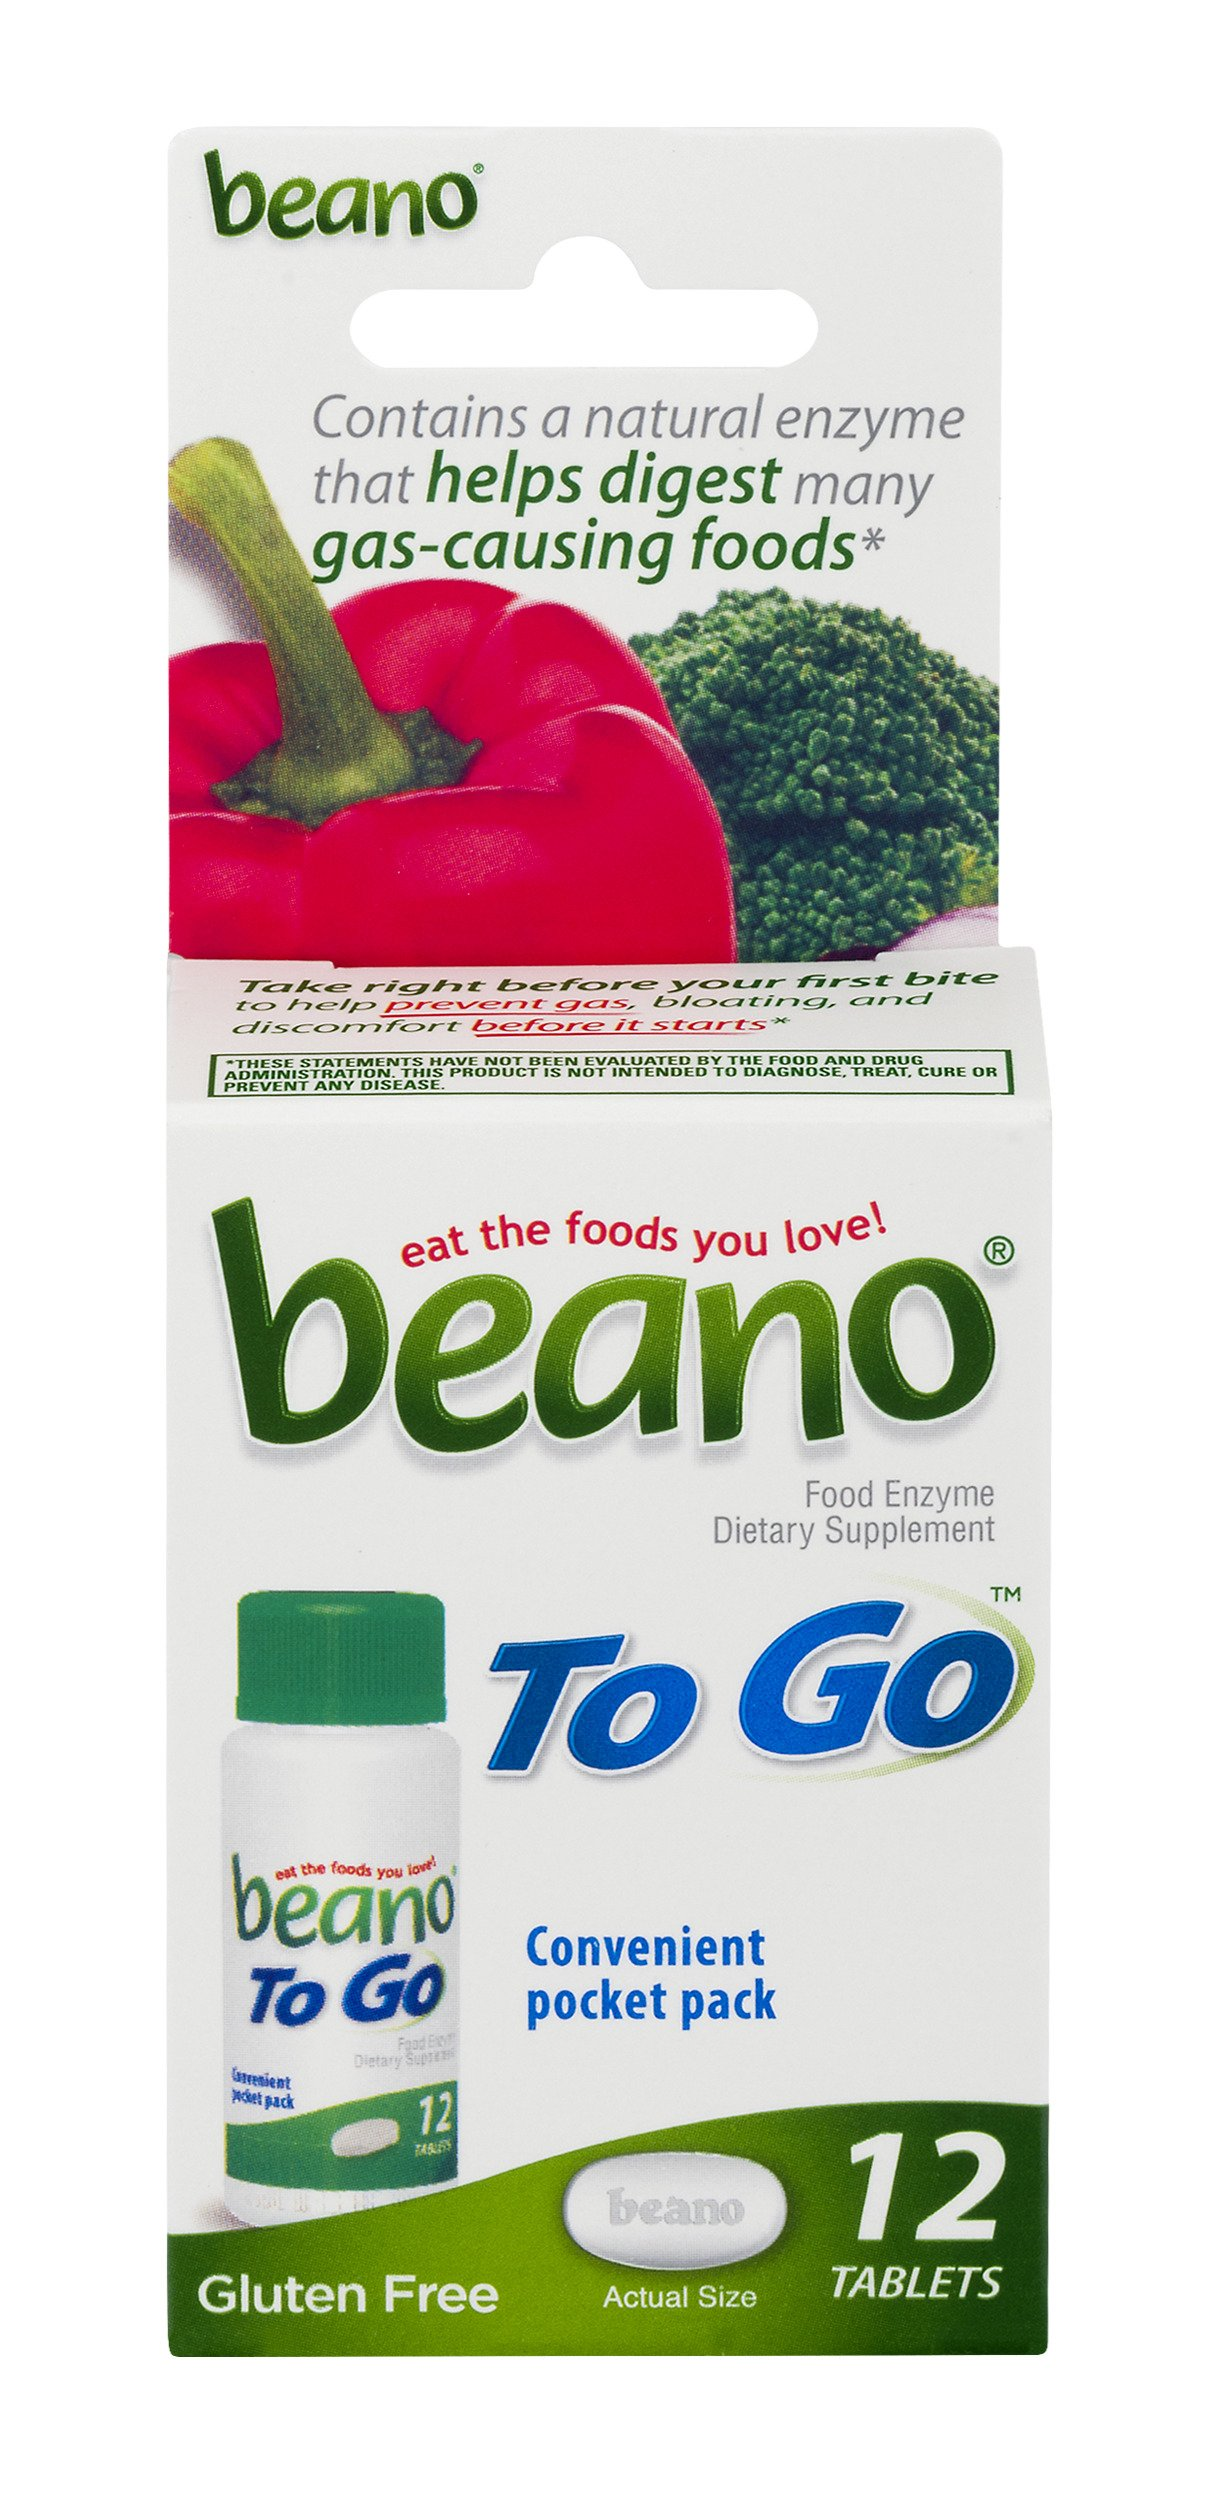 Beano To Go Food Enzyme Dietary Supplement | Help Digest Gas-Causing Foods | 12 Tablets| Pocket Pack Size | Packaging May Vary